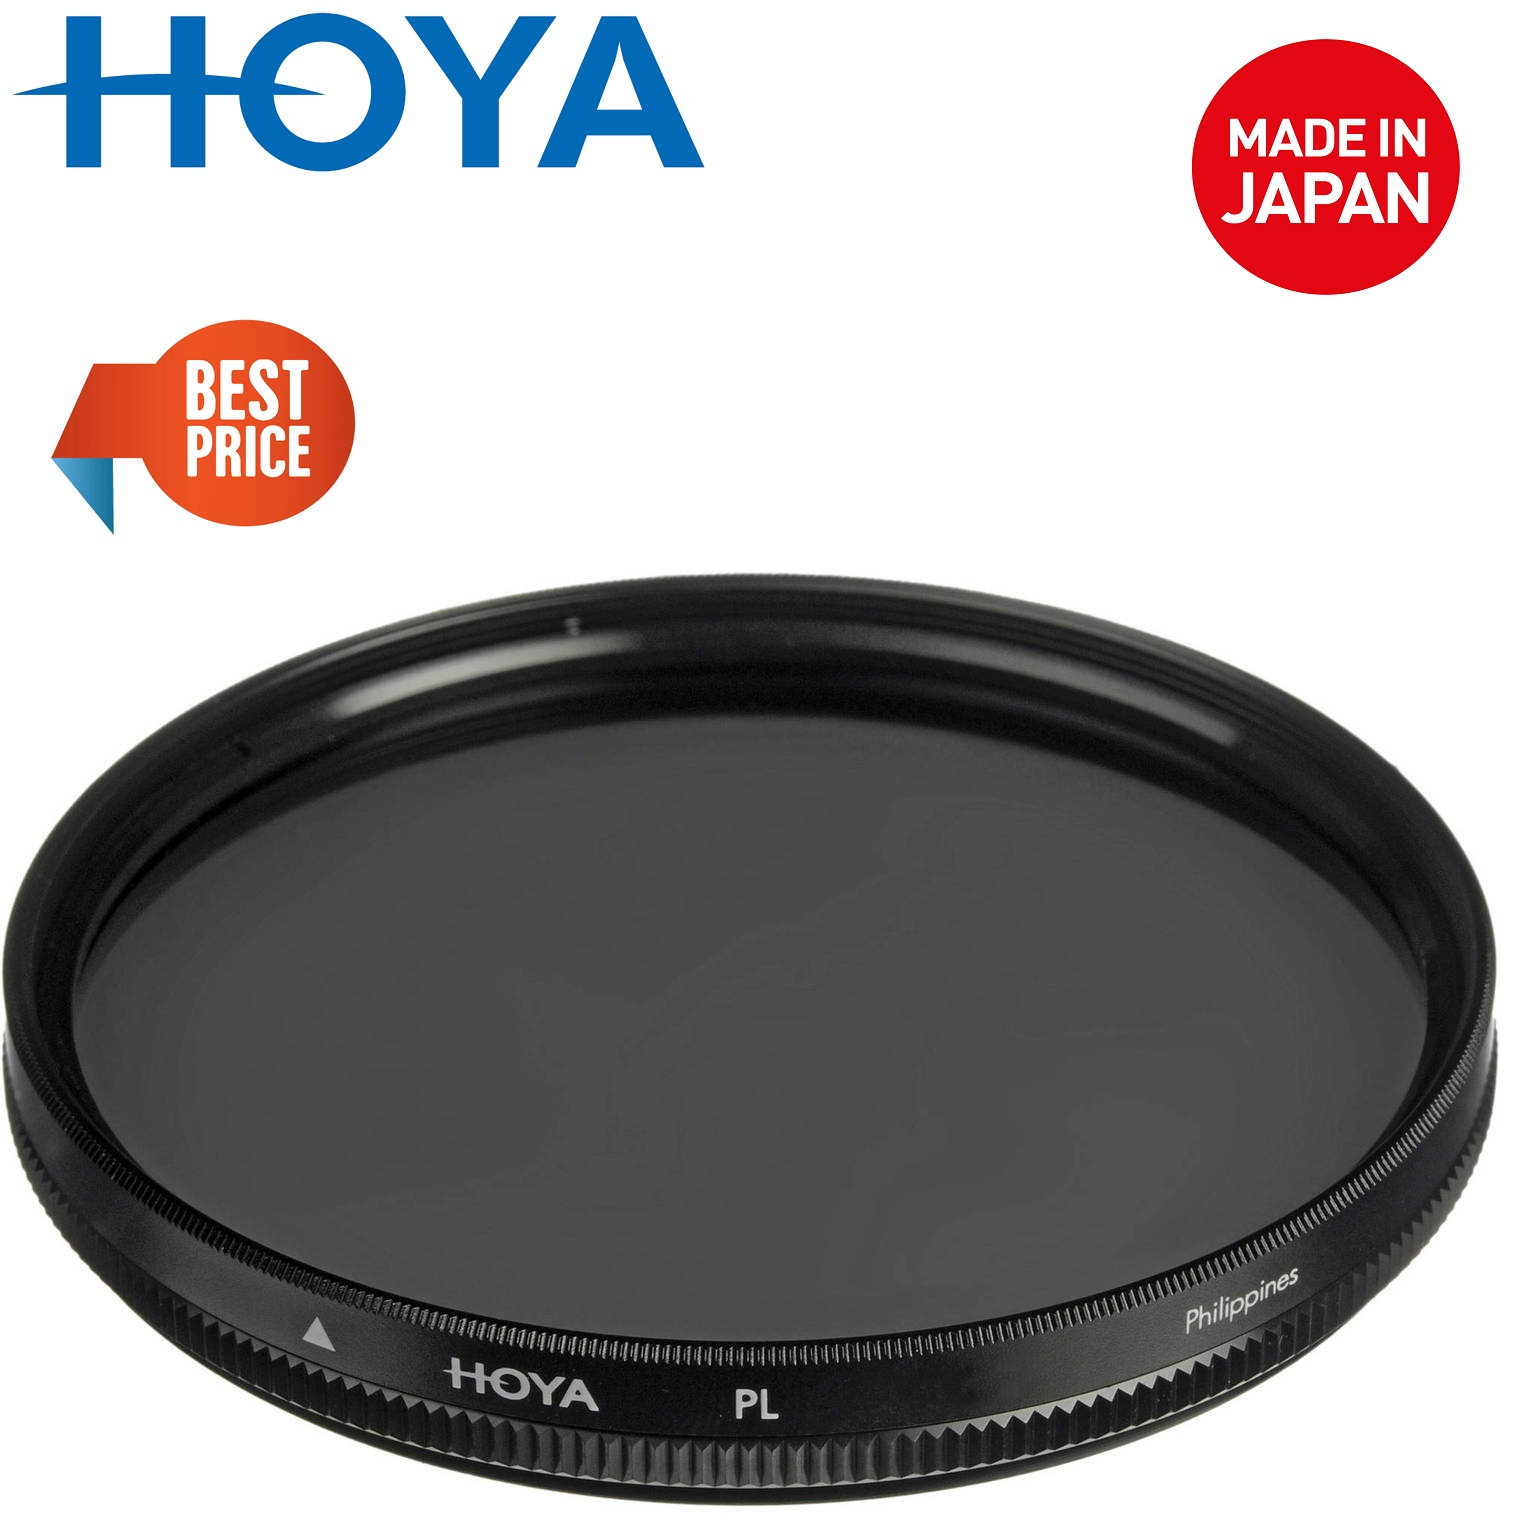 Hoya 43mm Polarizer Filter